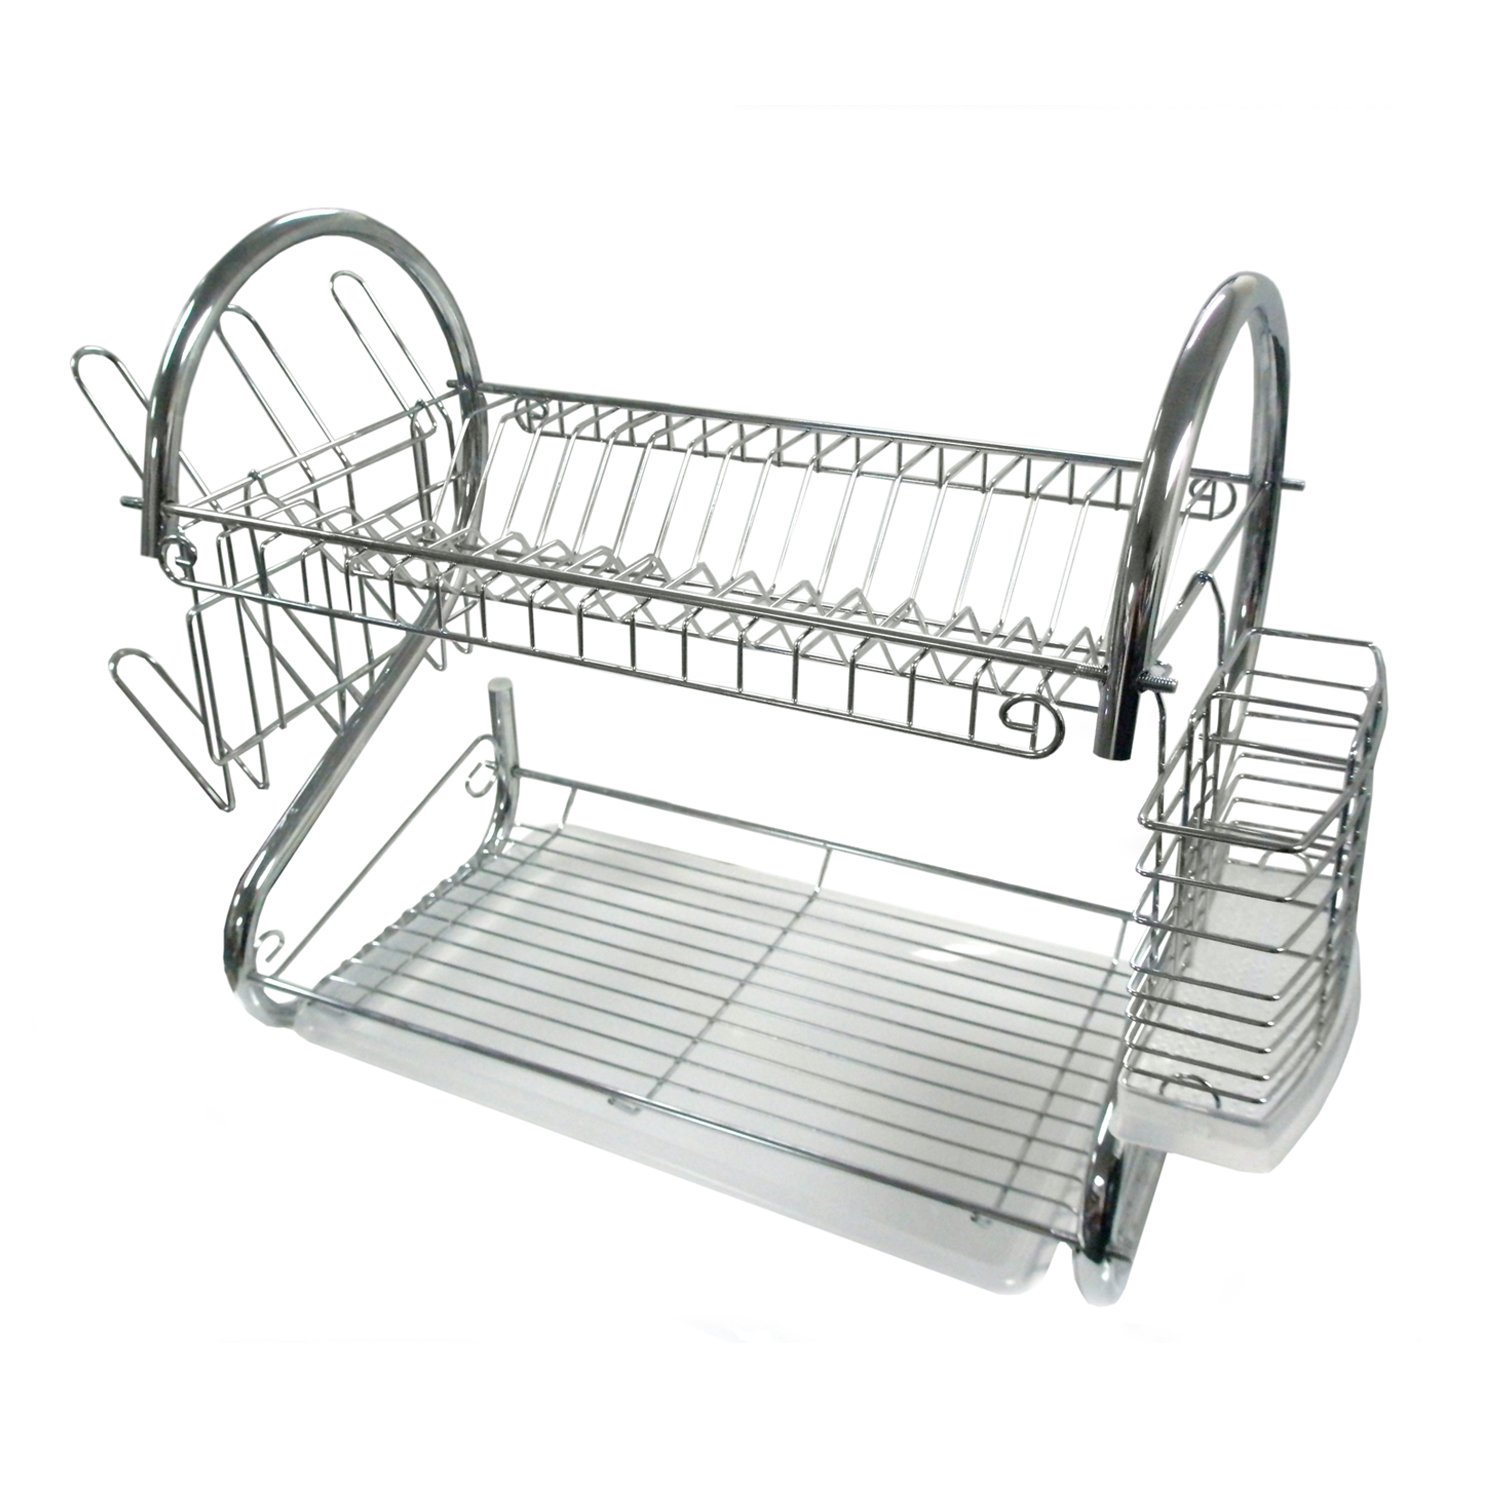 Better Chef Dr 16 2 Tier Dish Rack 16 Inch Chrome